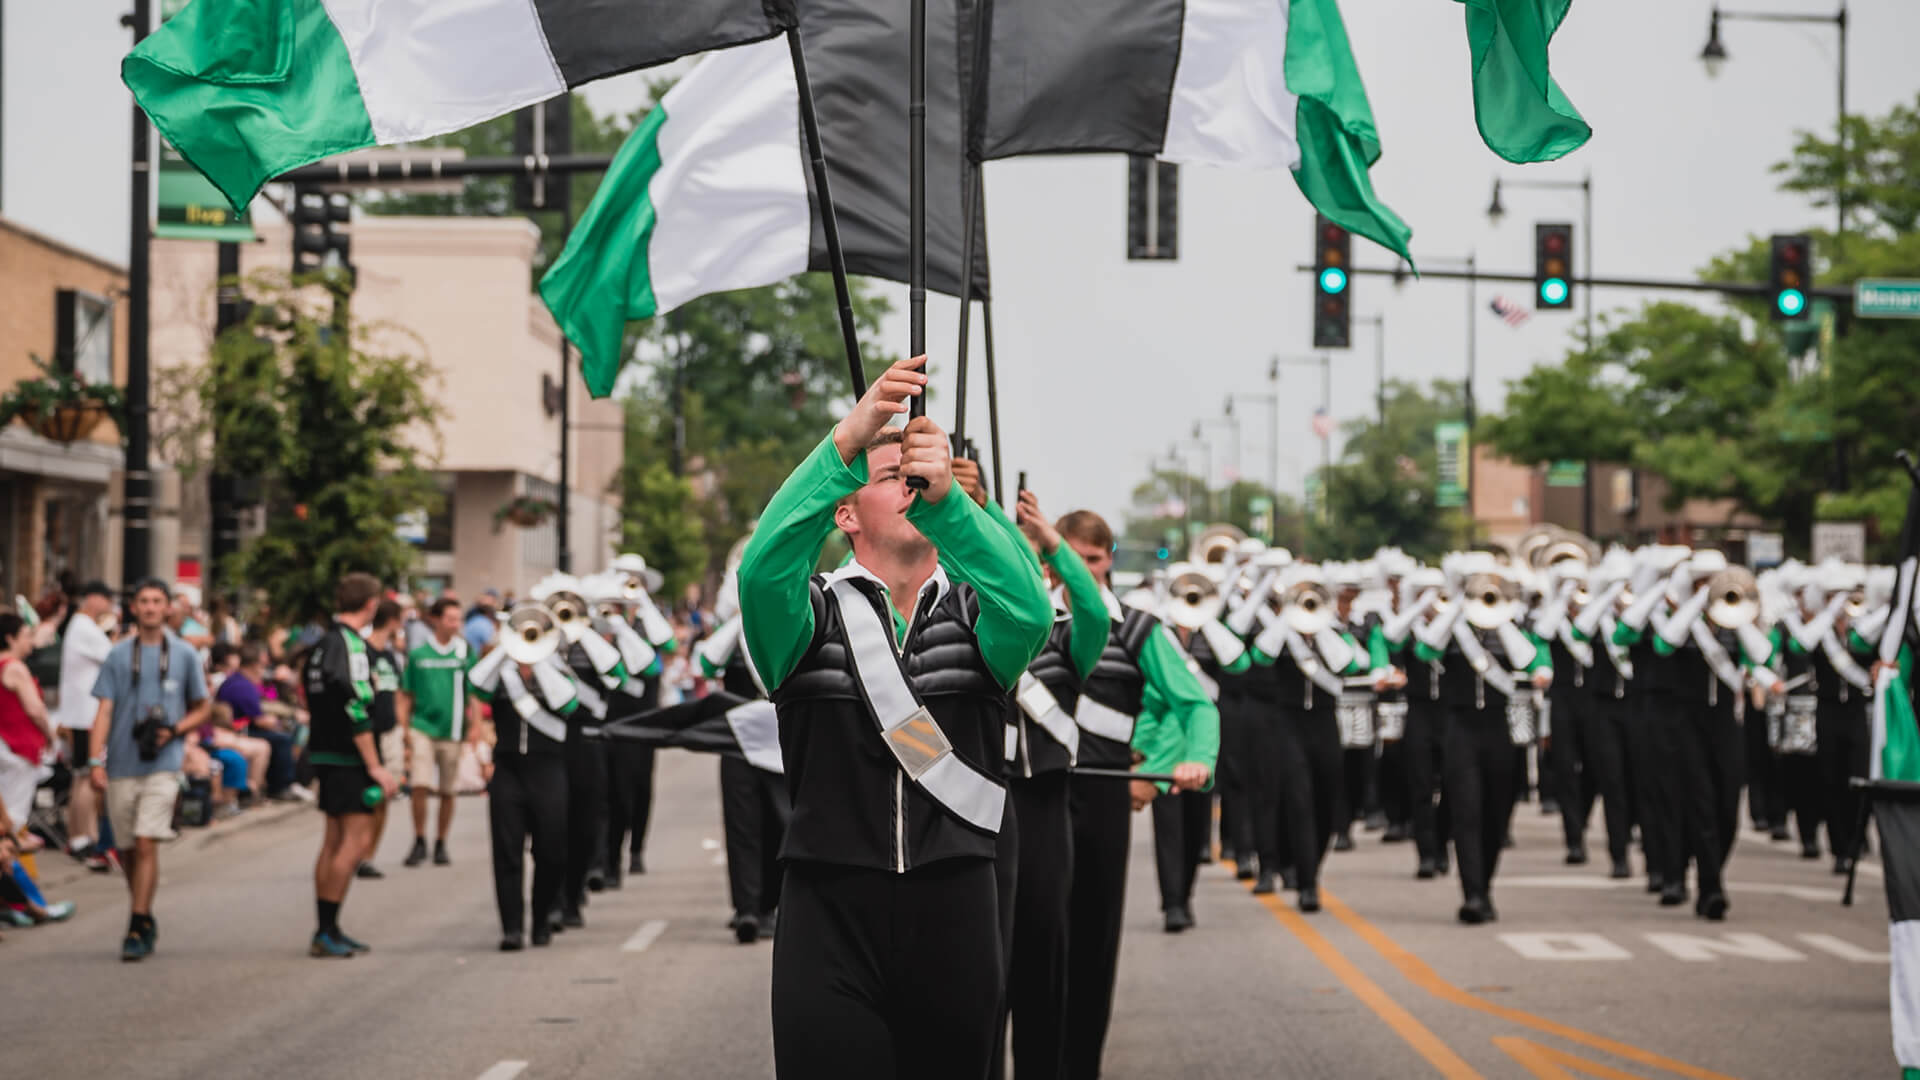 Where to find drum corps on the 4th of July